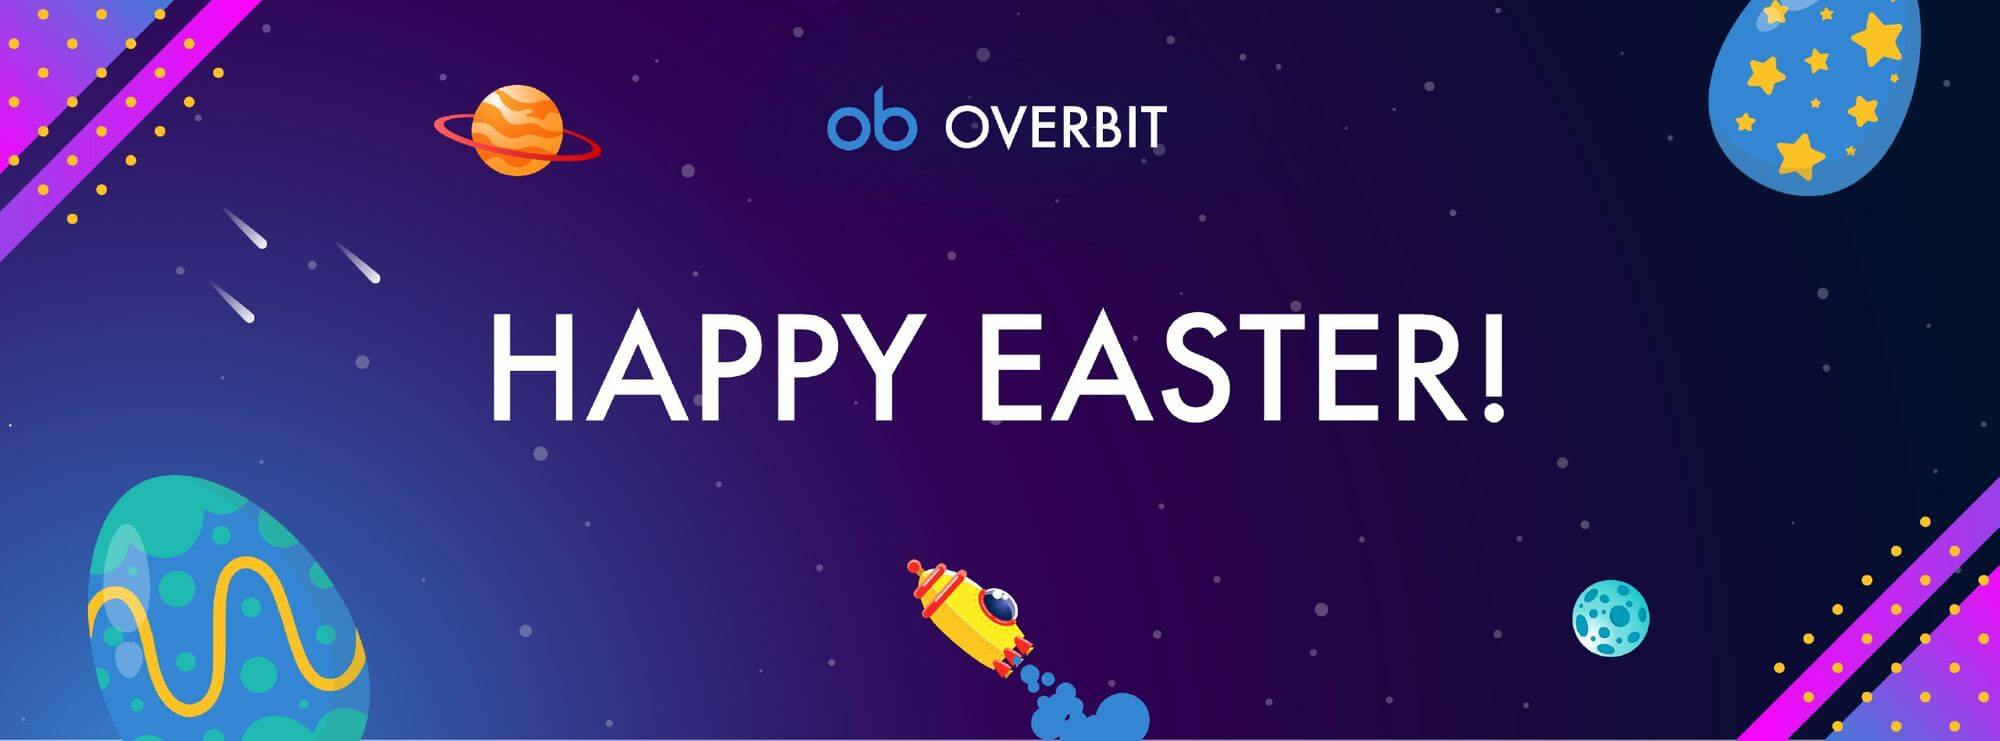 Win Daily Prizes On Overbit During The Easter Week